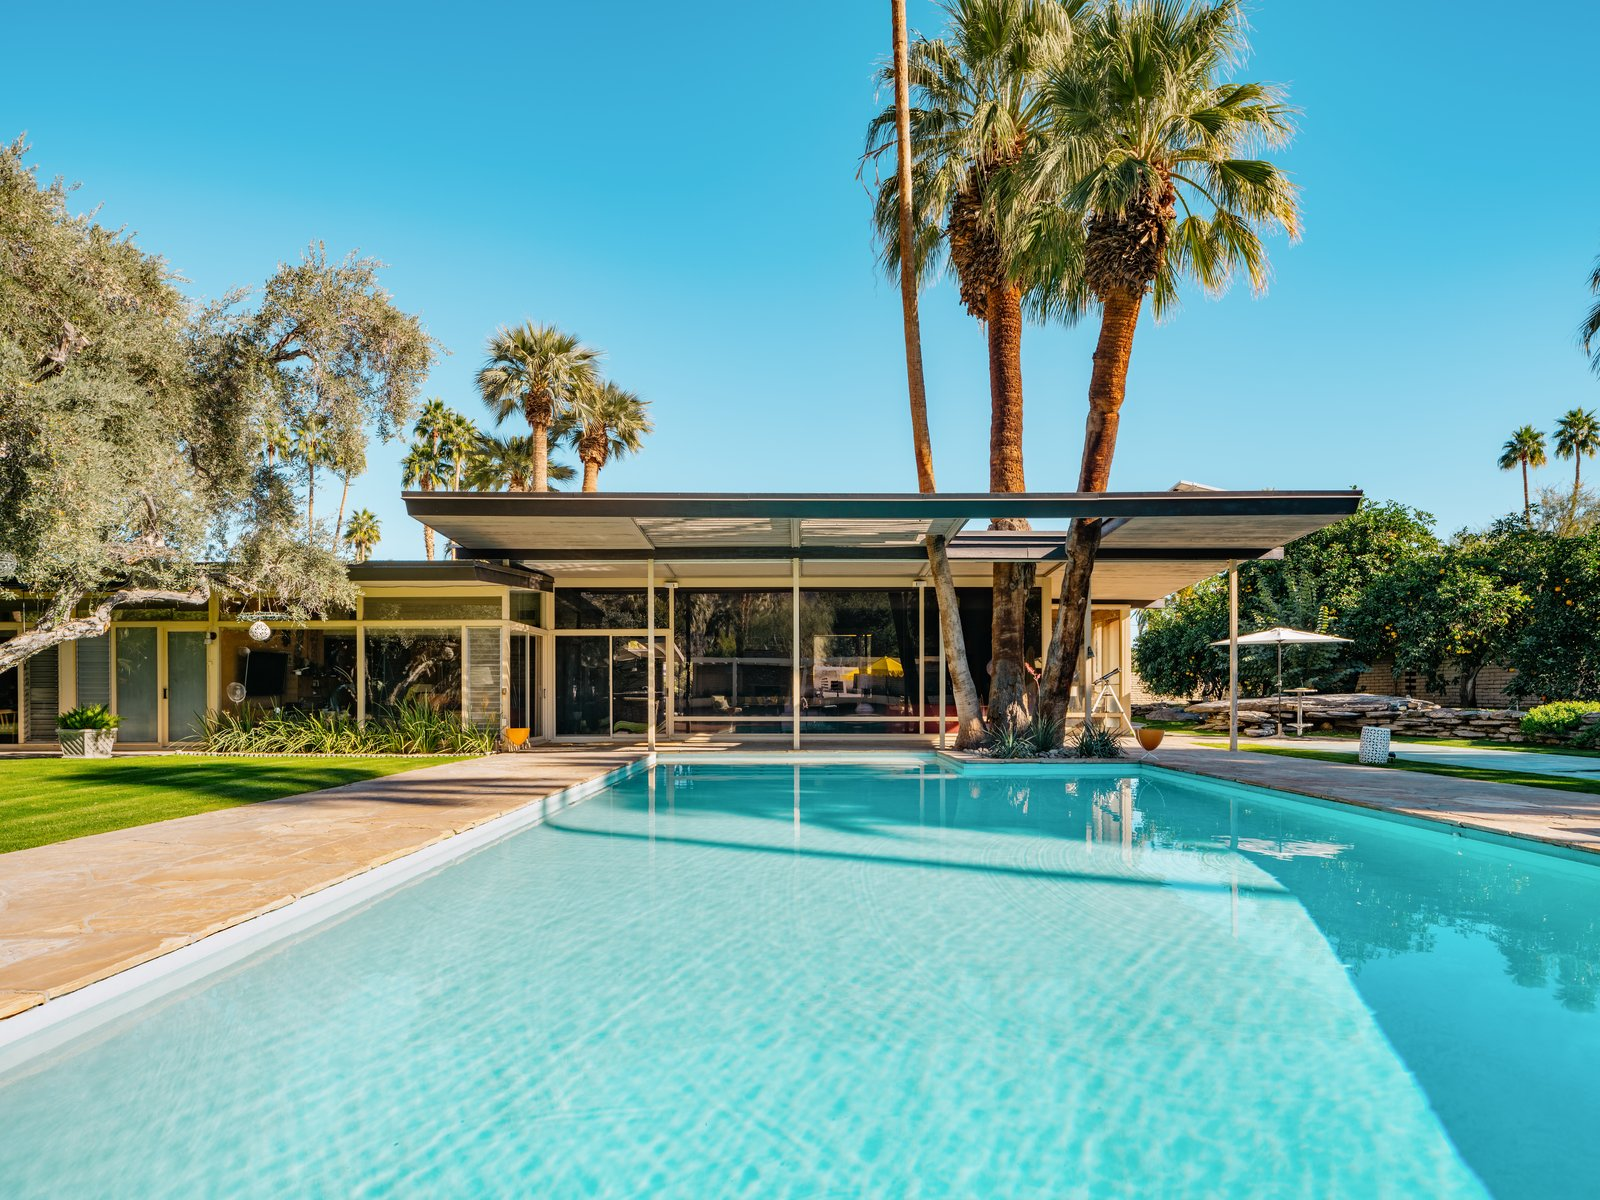 The large L-shaped estate looks out on a large pool and a luxurious outdoor entertaining area.